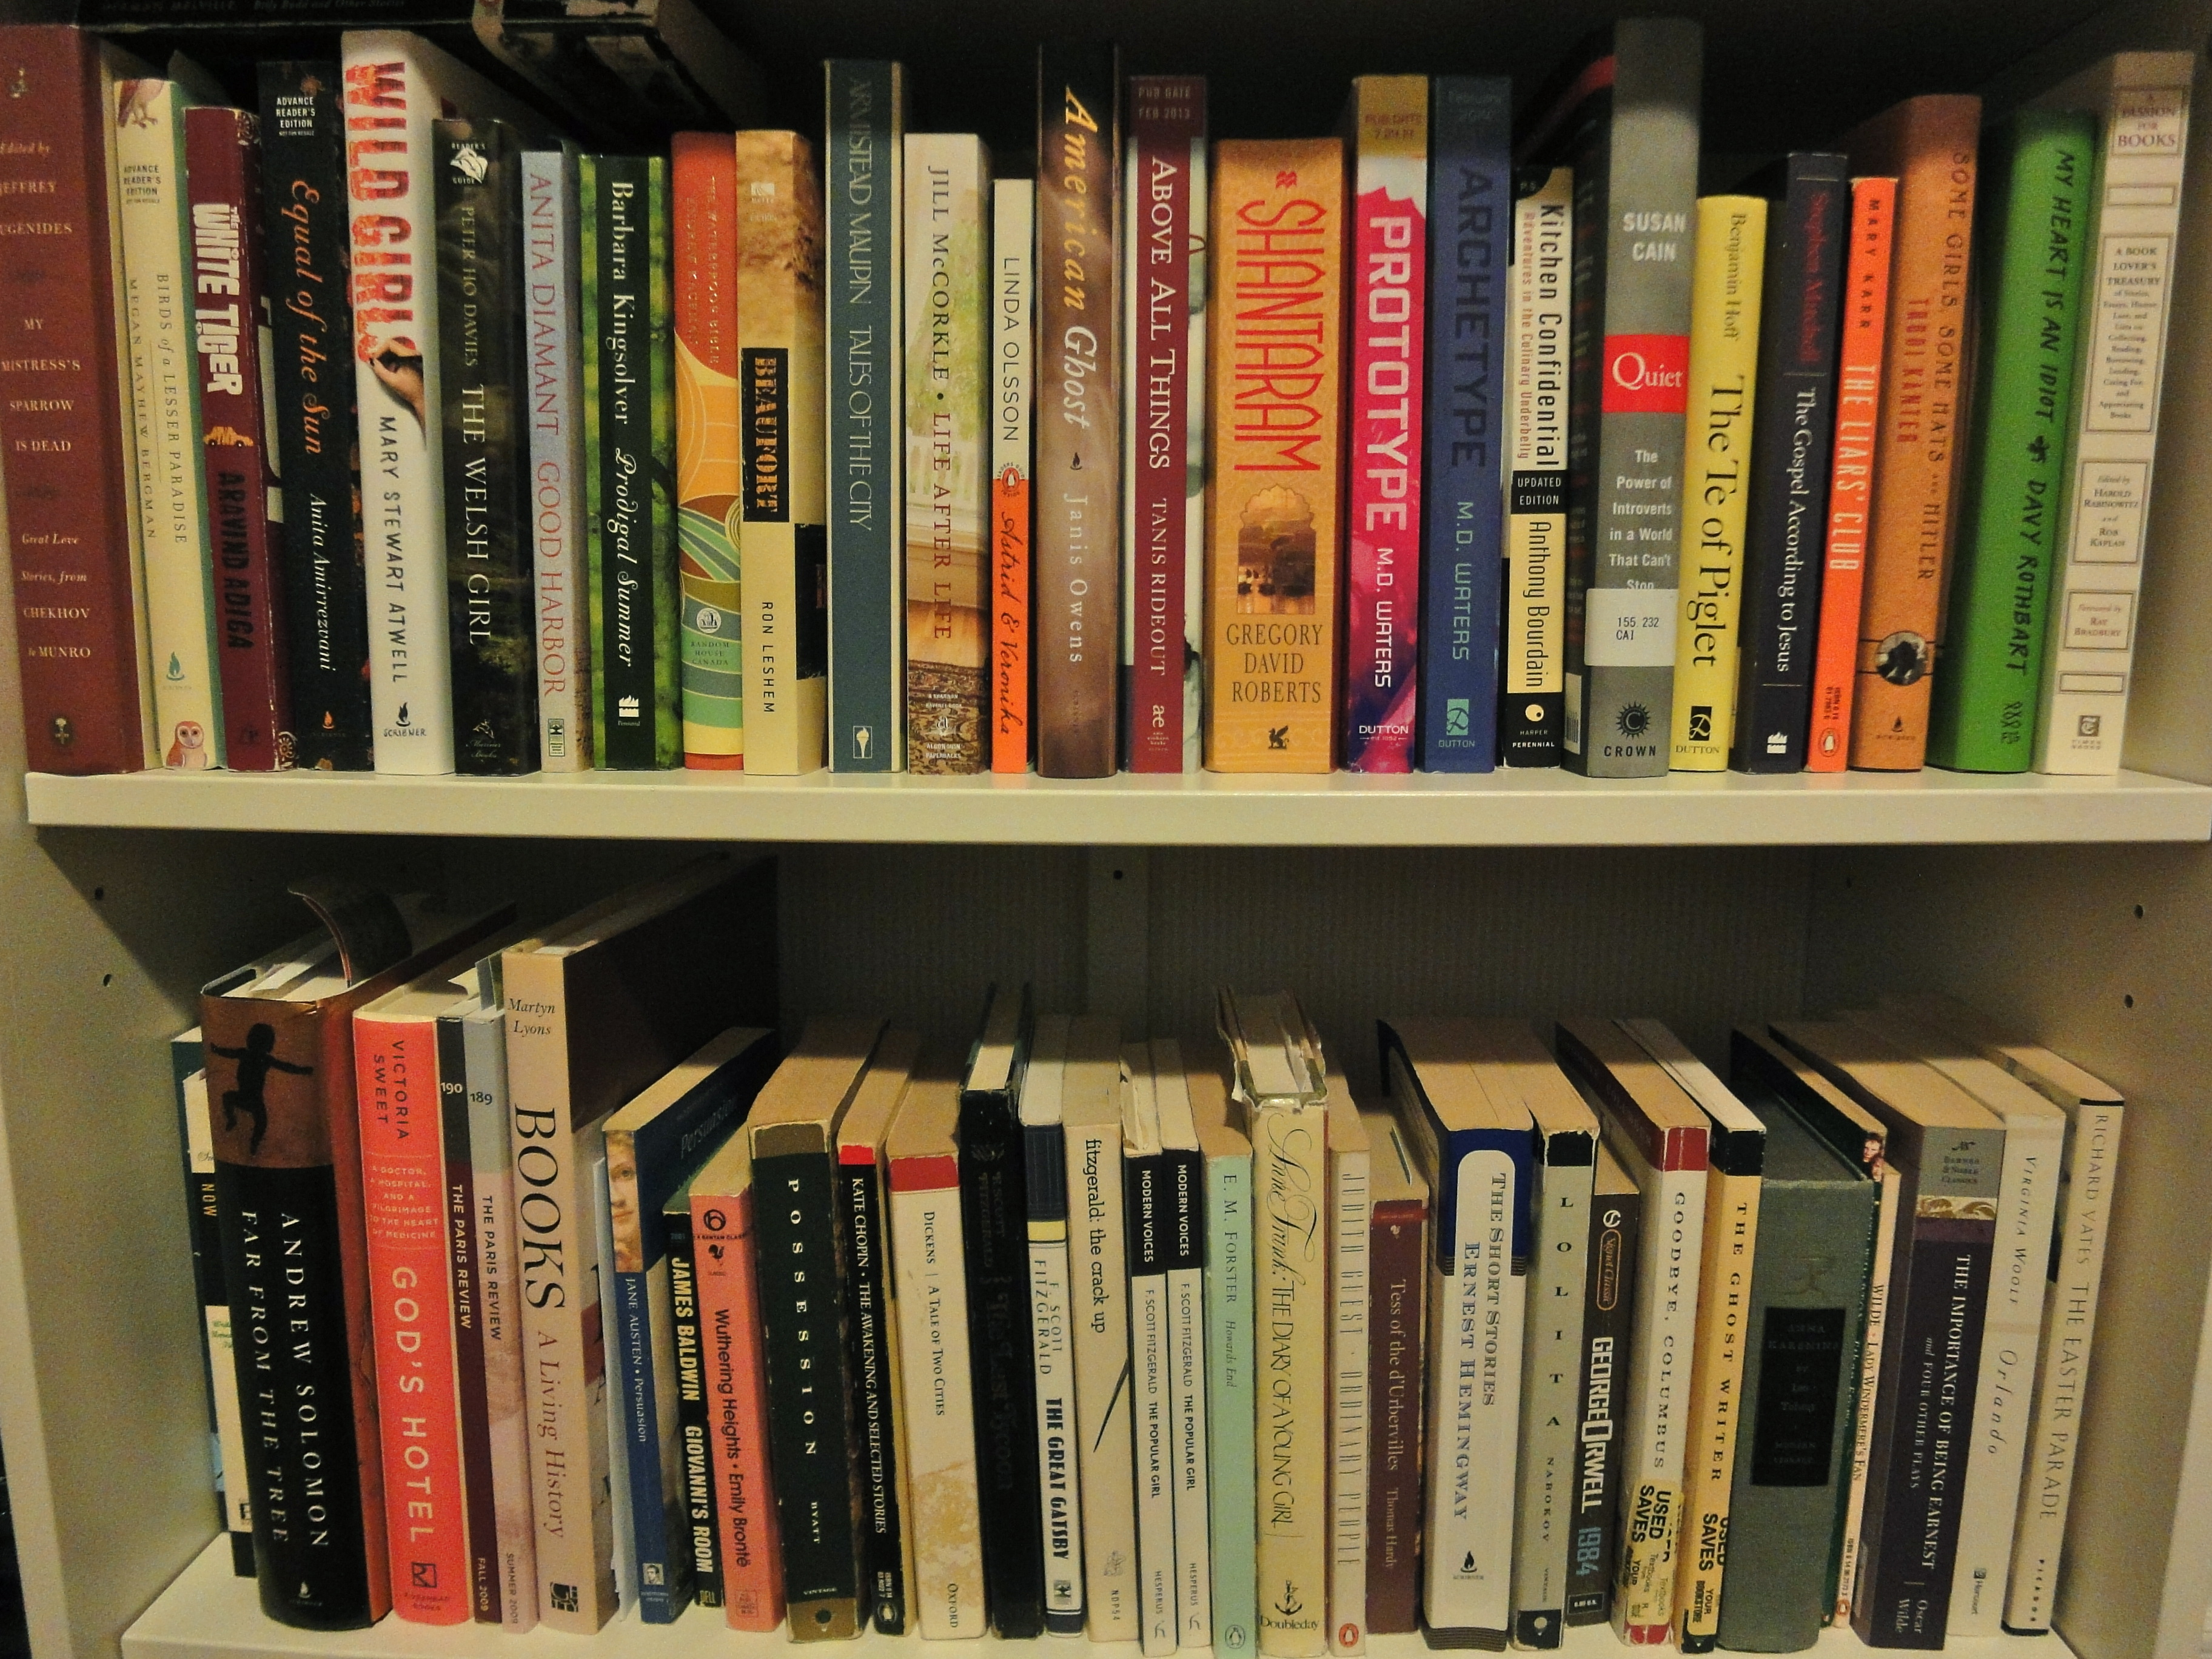 It's All The Books On The Top Shelf, Starting With Short Stories, Then  Fiction, Then Nonfiction, Which Continues Onto The First Part Of The Next  Shelf (see